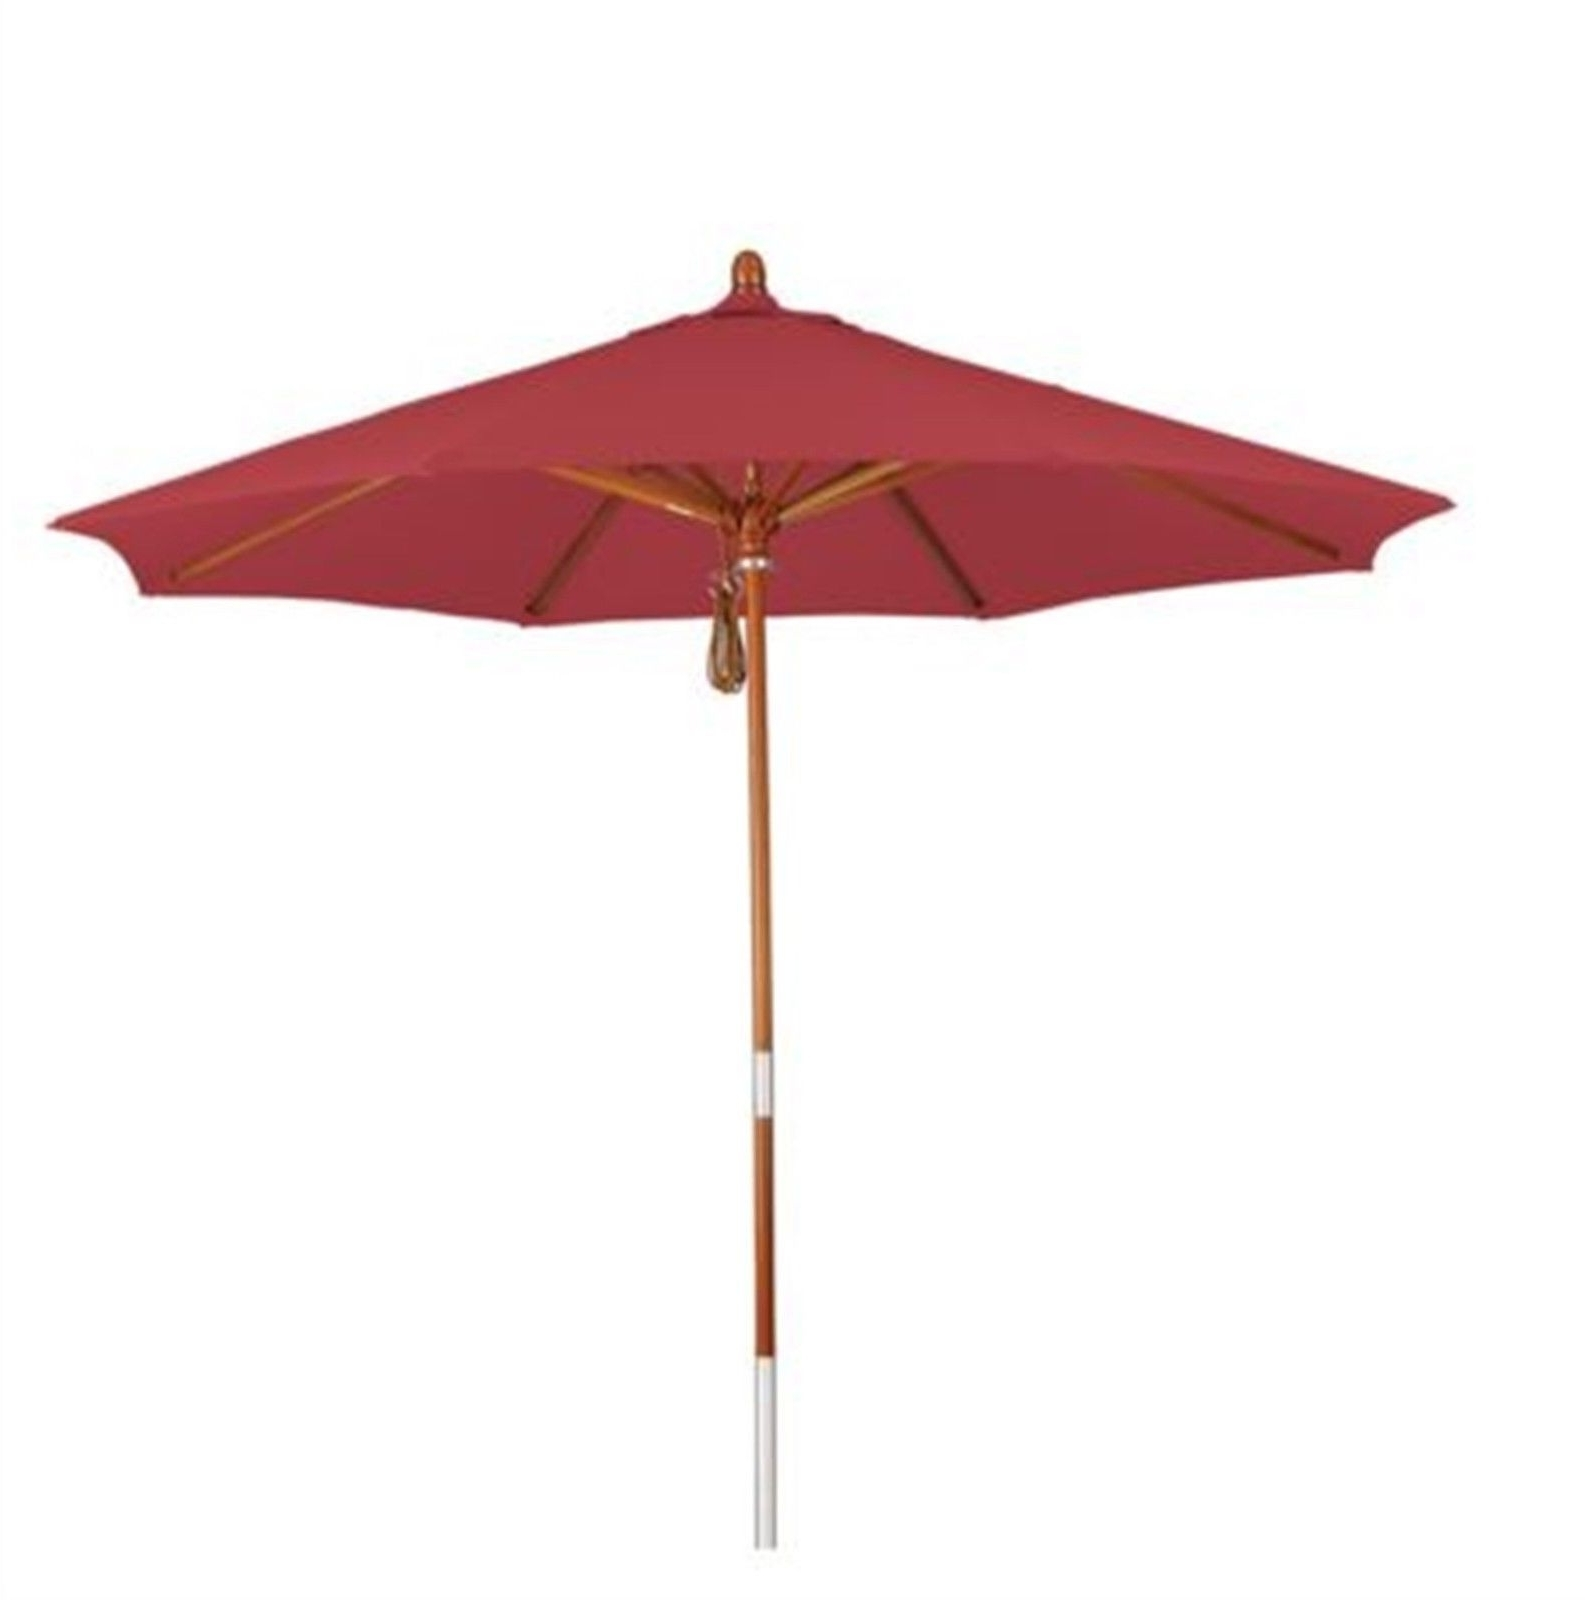 Phat Tommy Red Market Patio Umbrella Home Decorative Furniture With Regard To Current Red Patio Umbrellas (View 15 of 20)